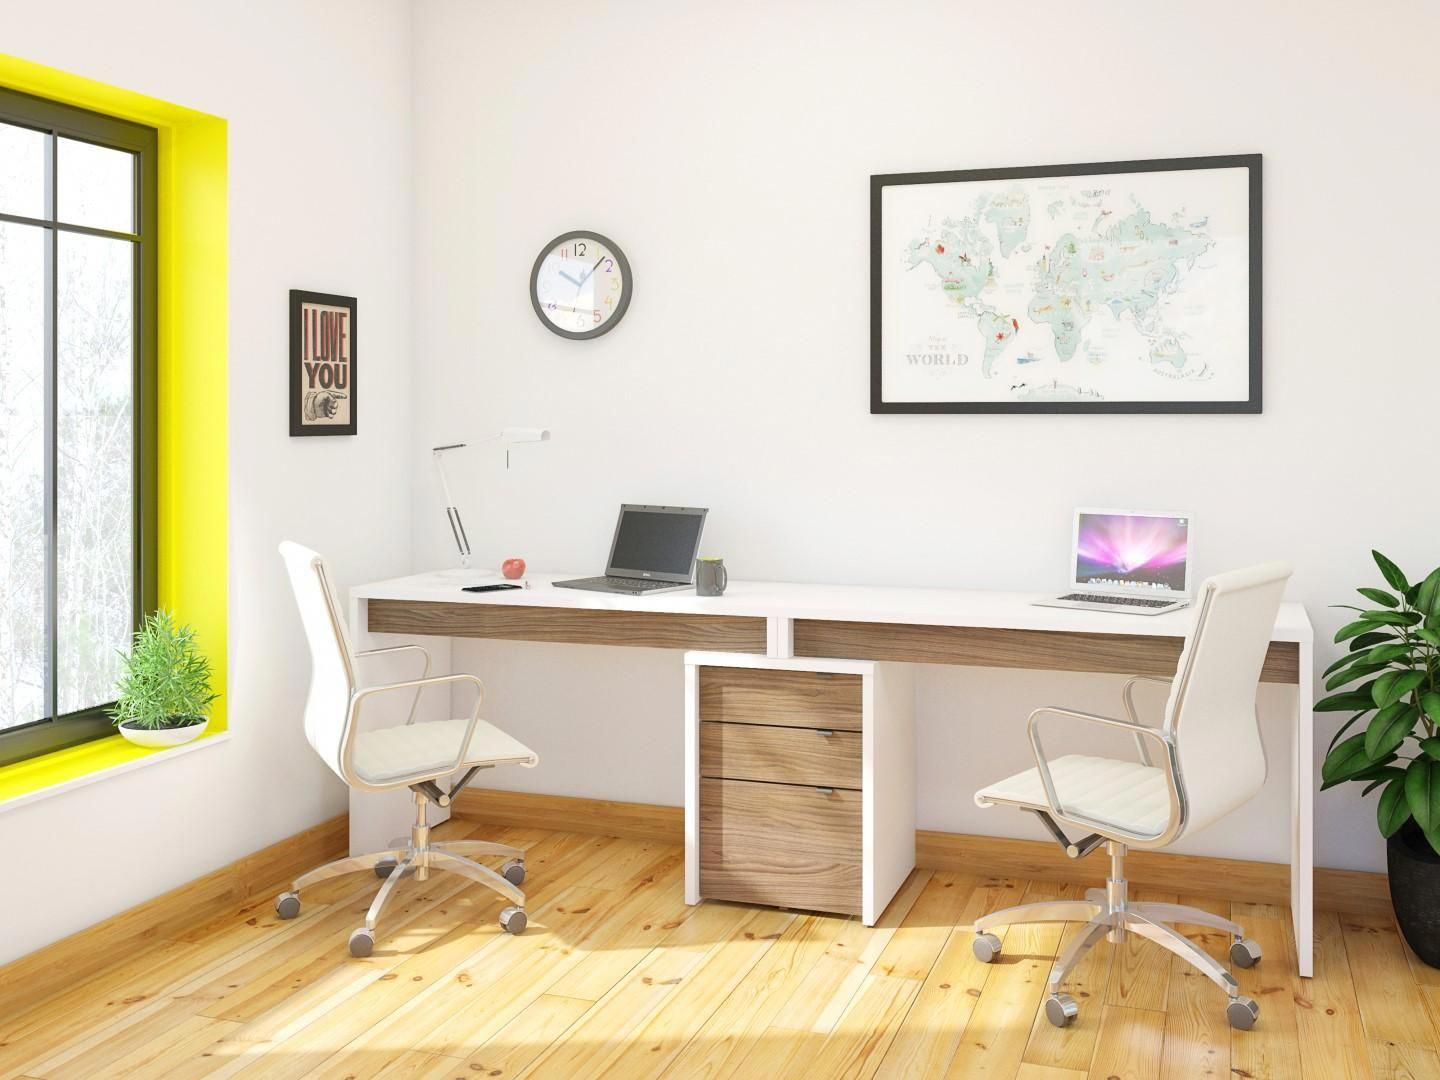 Home Office Wall Home Study Decor Small Office Interior Design